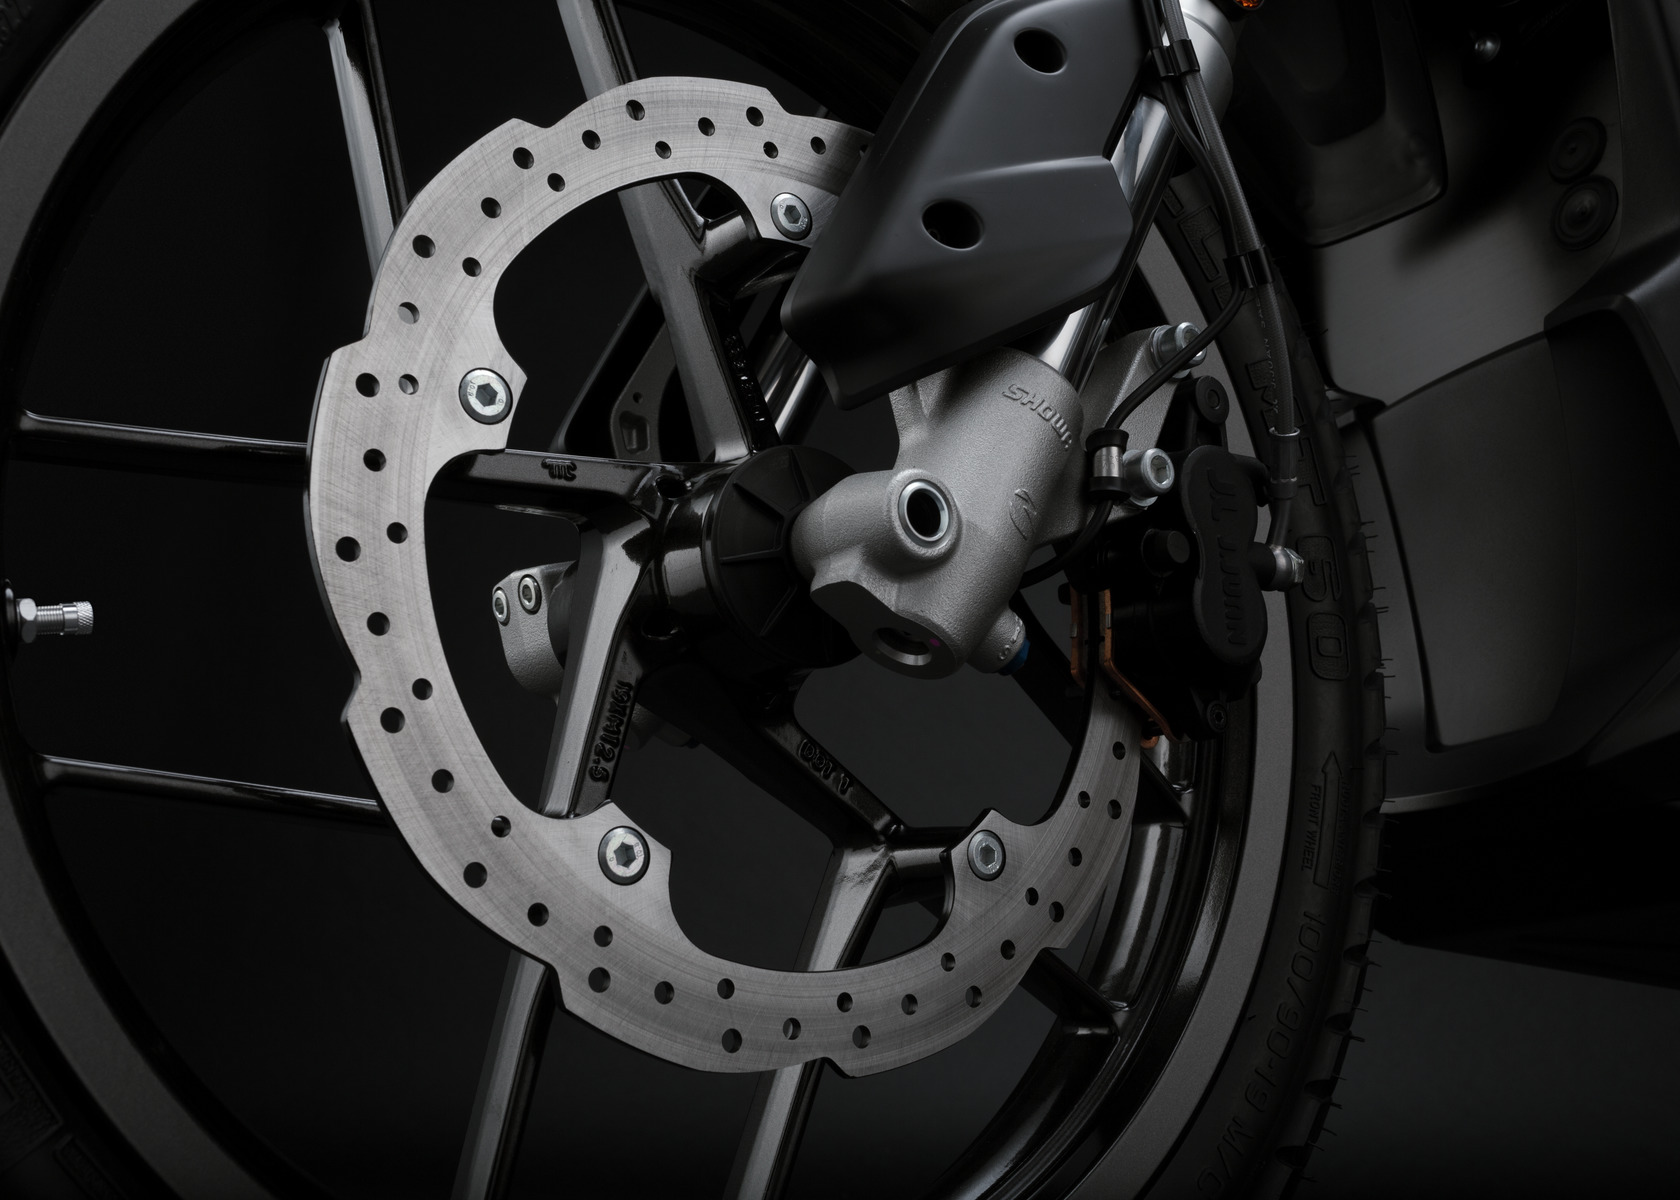 2016 Zero DSR Electric Motorcycle: Front Brake